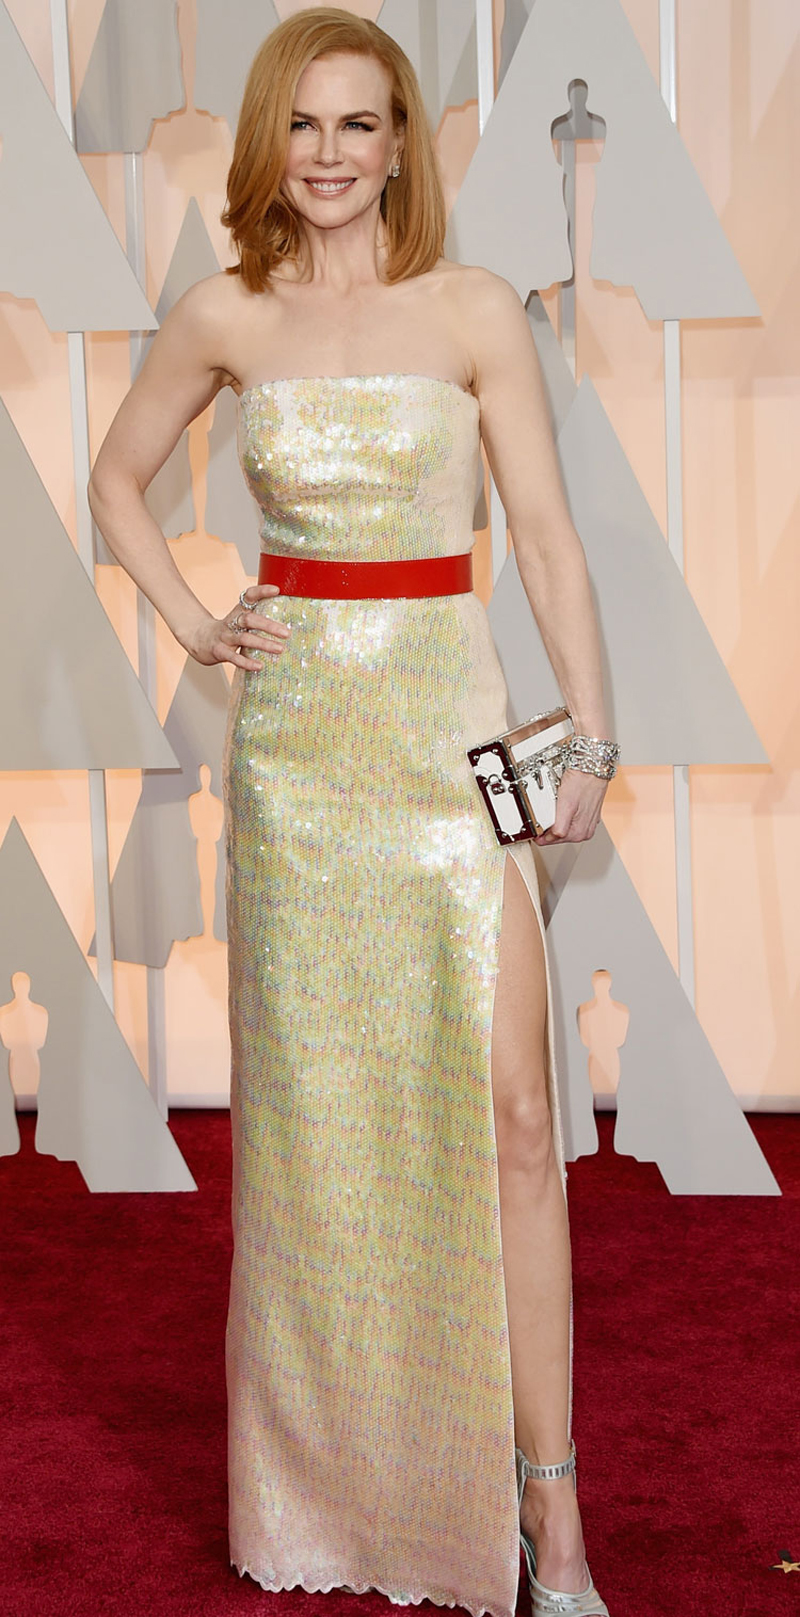 Oscars red carpet 2015 my top 5 best worst dressed - Red carpet oscar dresses ...